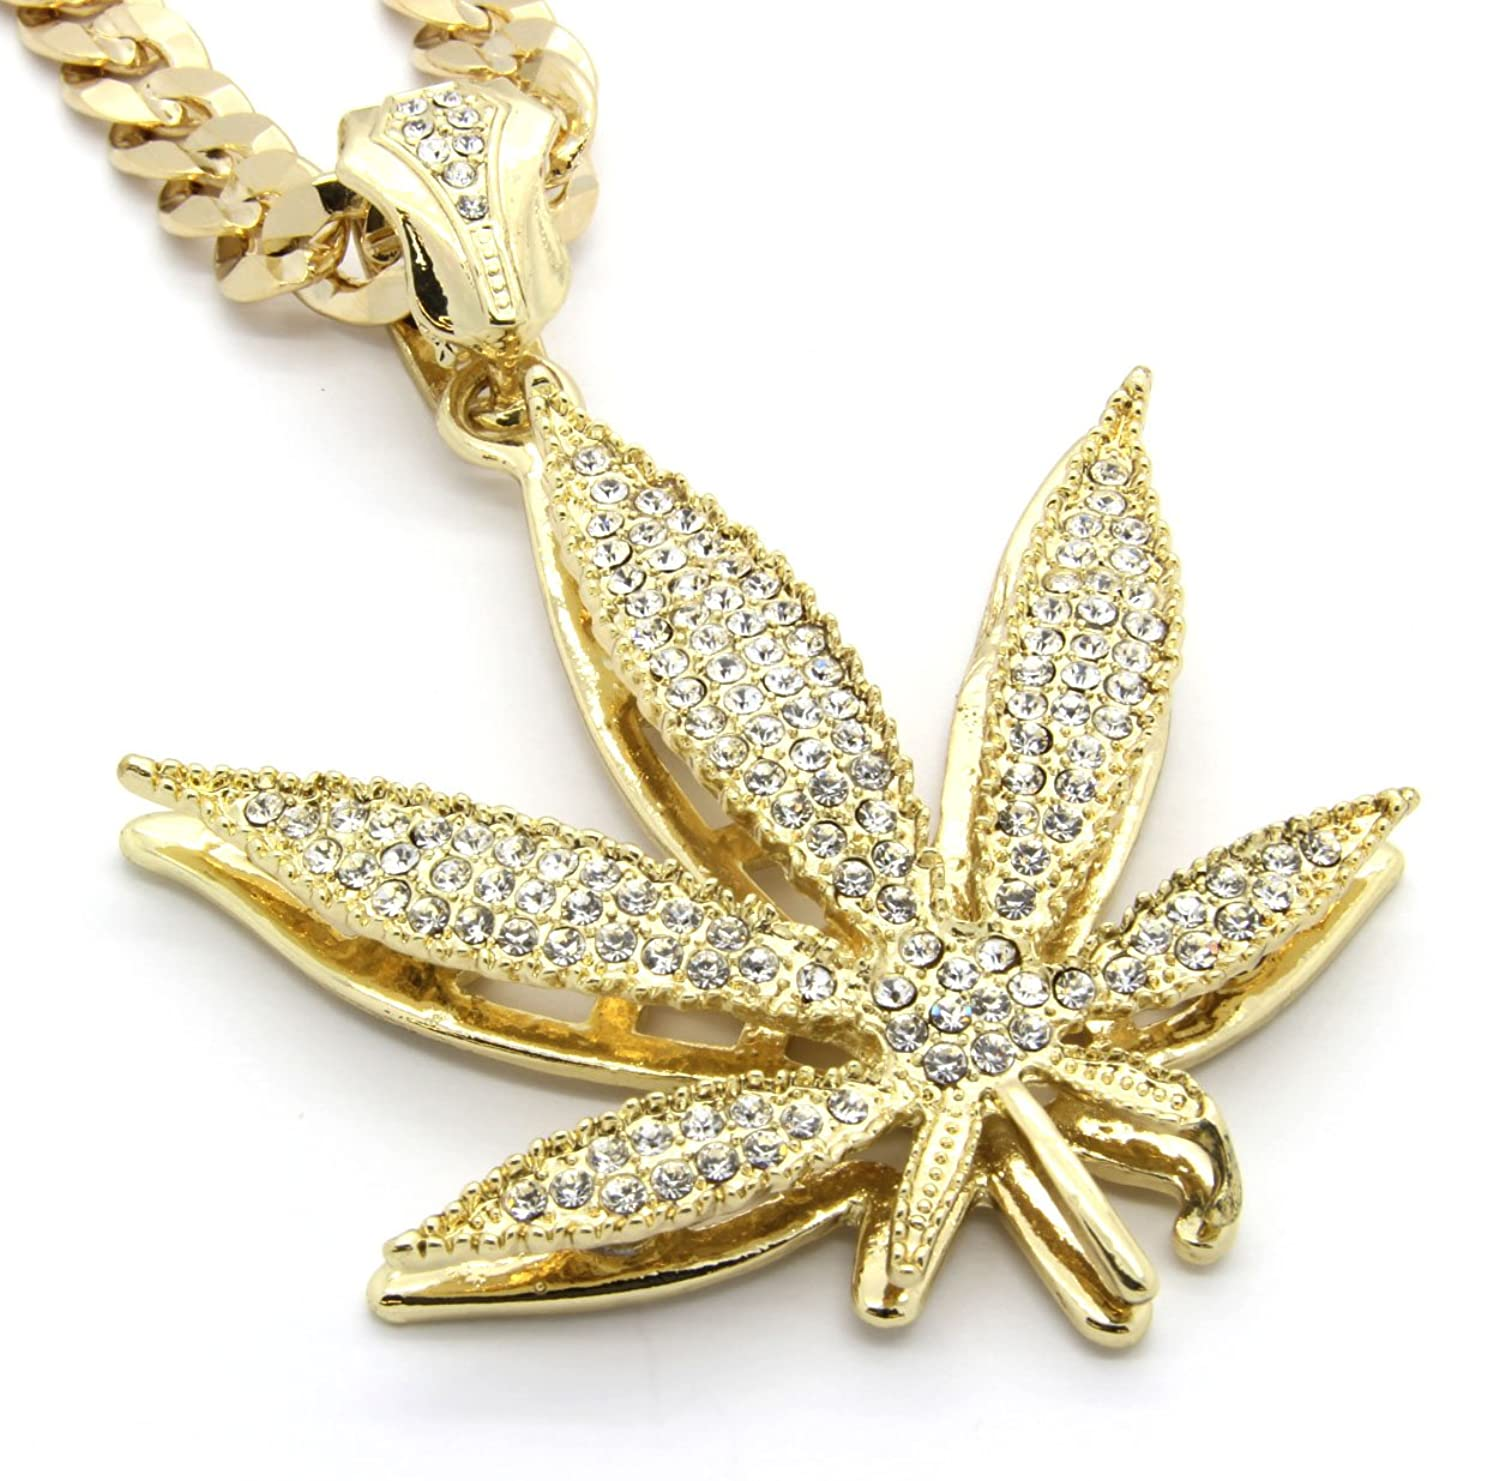 Mens gold tone marijuana hip hop pendant 30 10mm cuban chain mens gold tone marijuana hip hop pendant 30 10mm cuban chain necklace amazon aloadofball Image collections